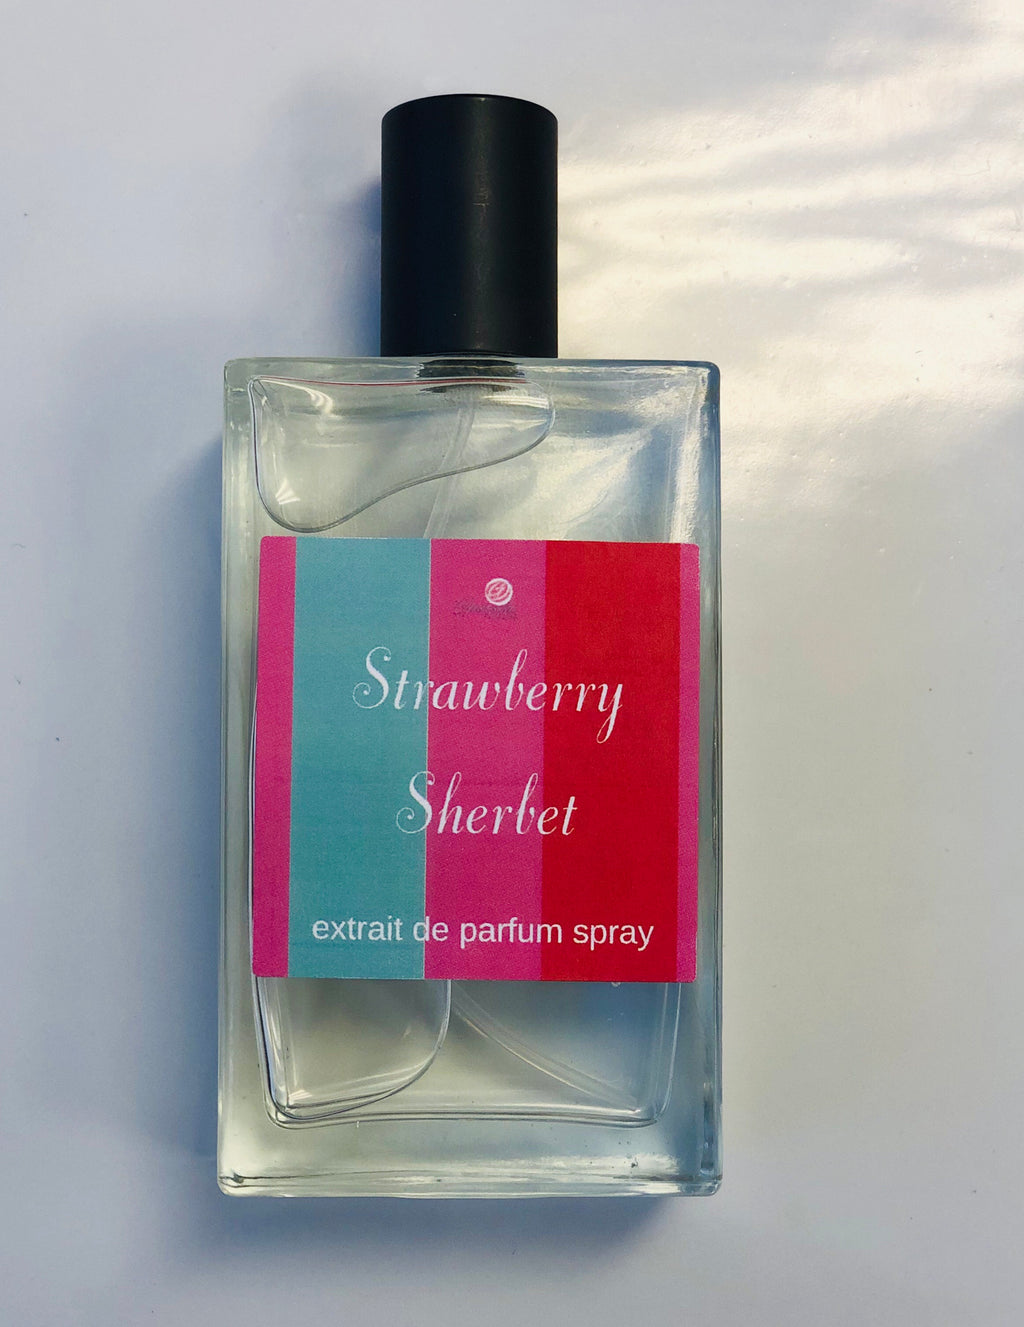 Strawberry Sherbet Limited Edition Handmade Eau de Parfum Spray